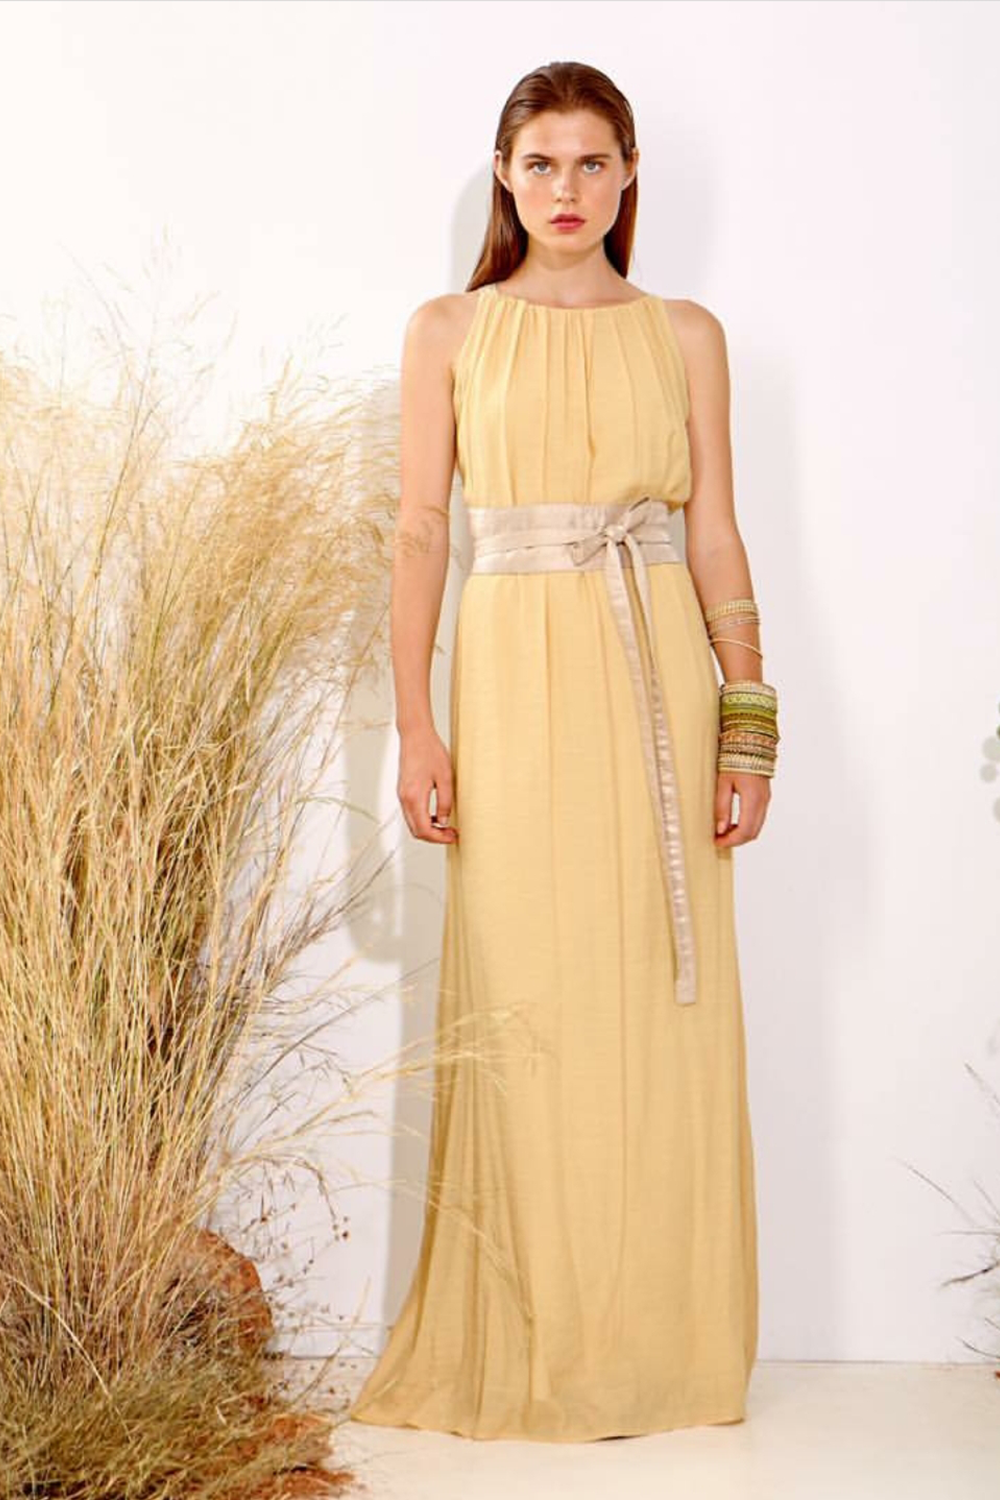 Moutaki Pale Yellow Maxi Dress with Sash Belt